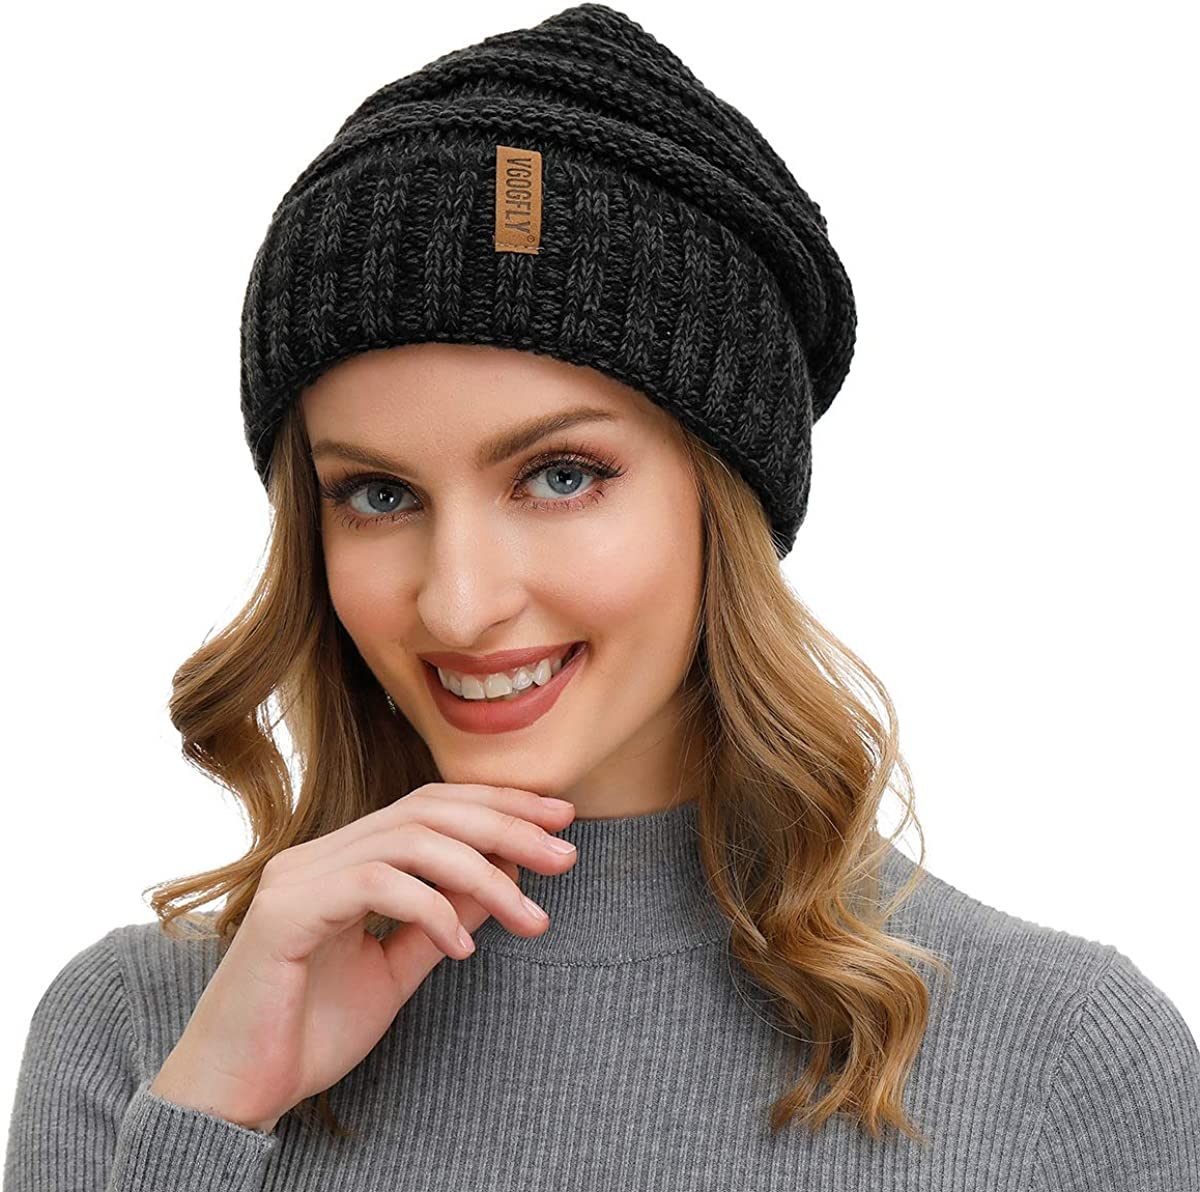 Winter Warm Cable Knitted Beanie Hats Baggy Slouchy Skull Ski Cap